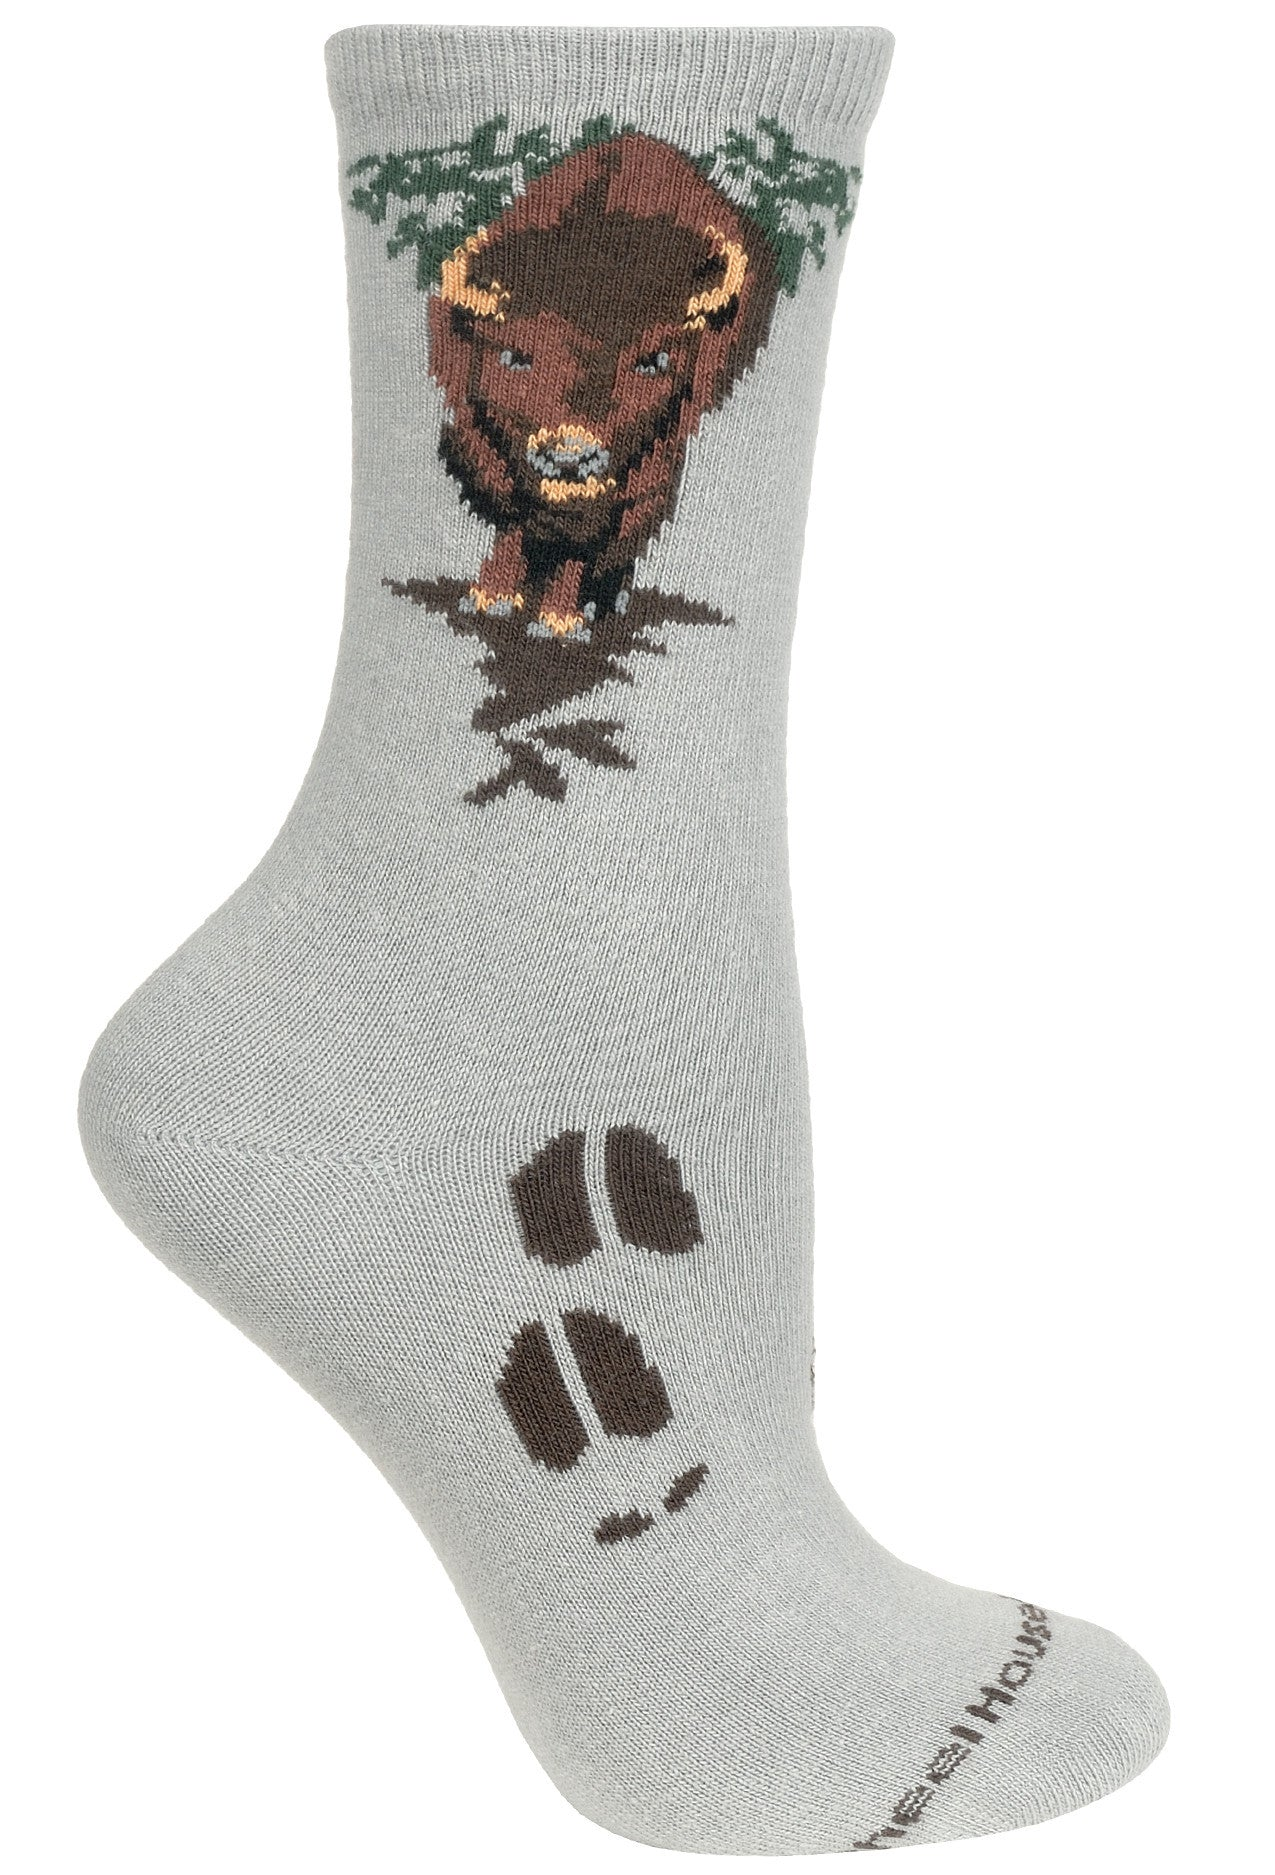 Buffalo on Gray Socks